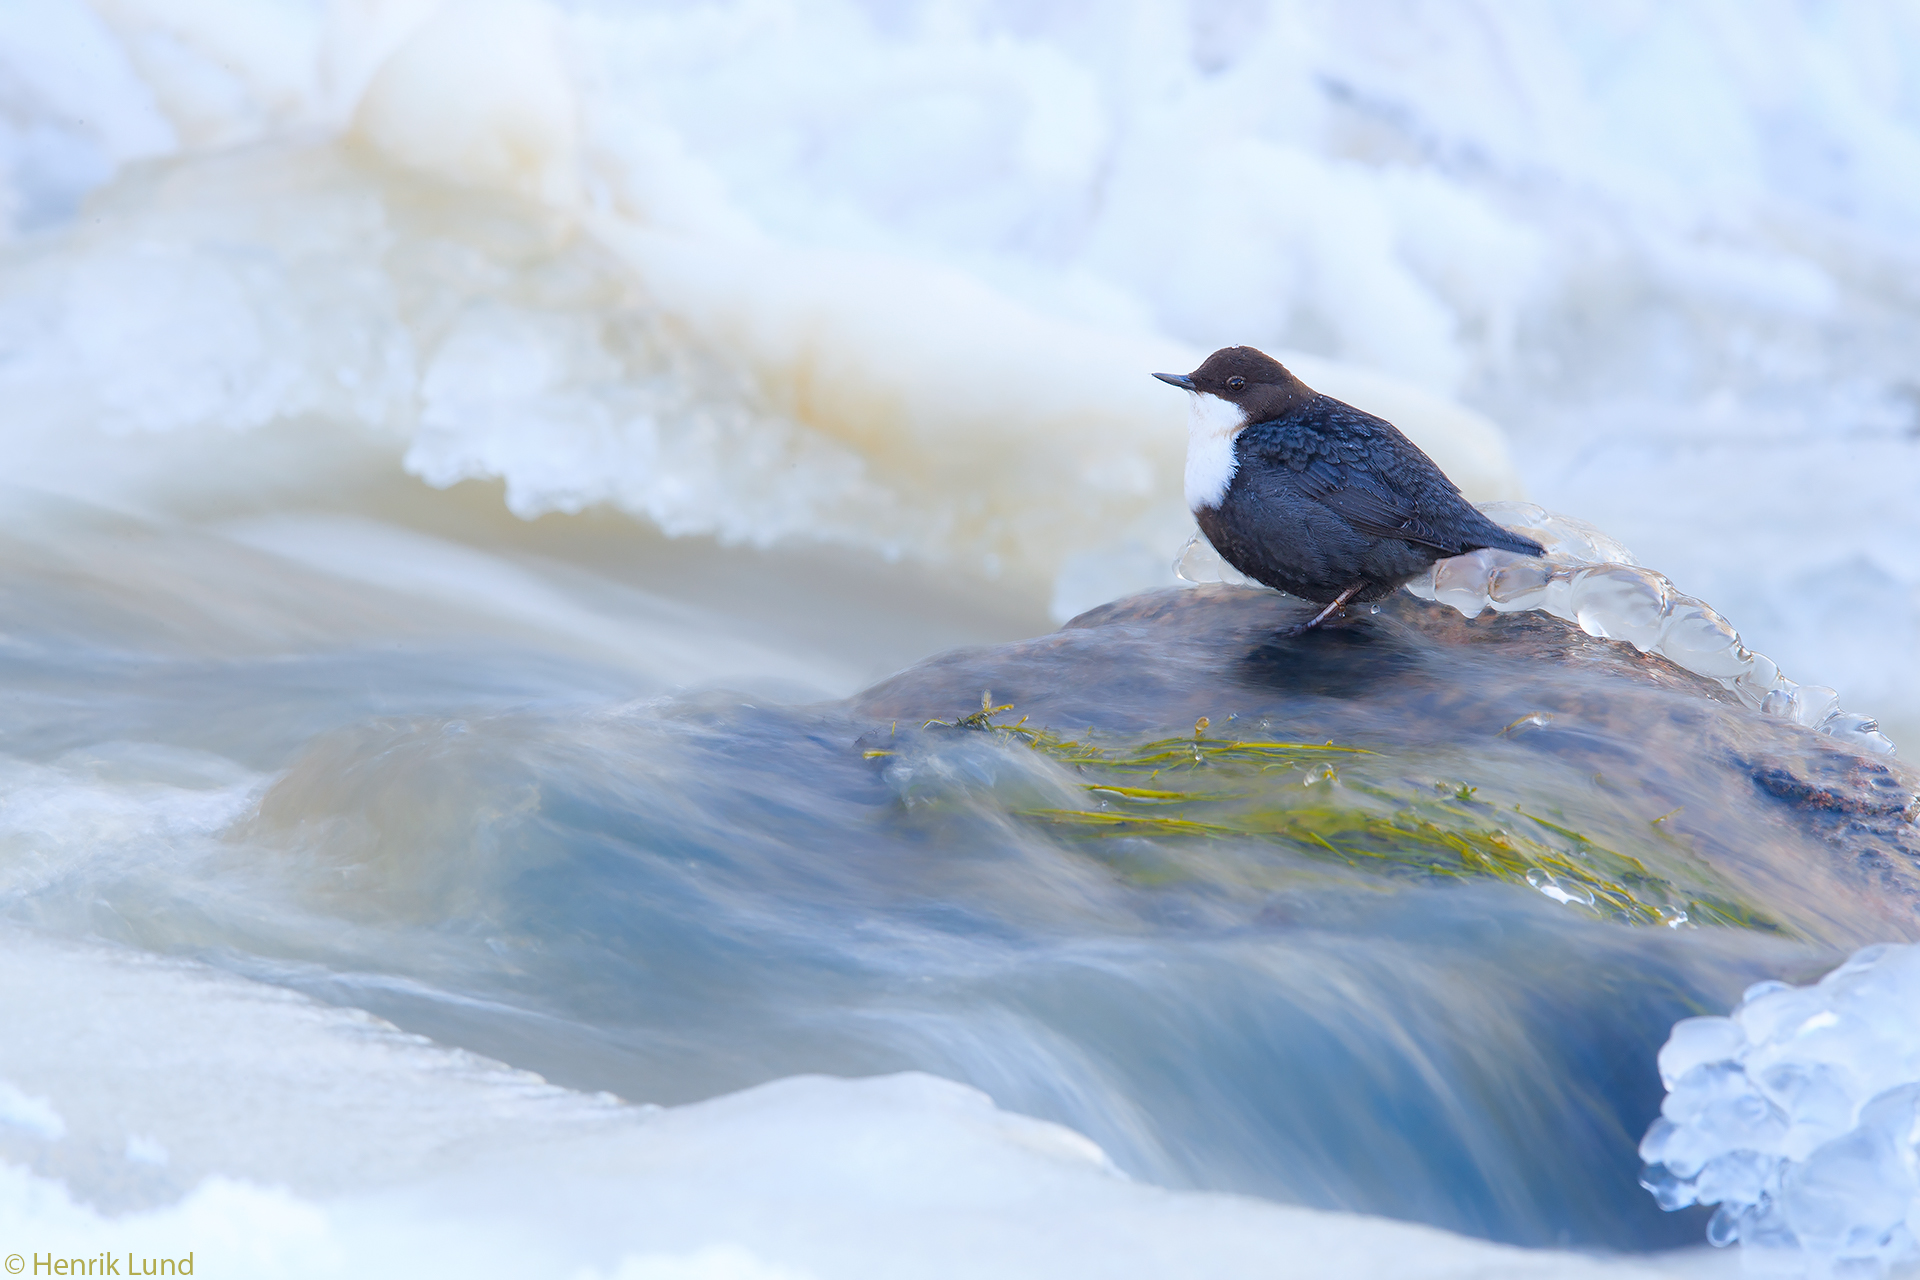 White-Throated dipper posing in a longer exposure at the rapids. Porlammi, Lapinjärvi, Finland. March 2018.